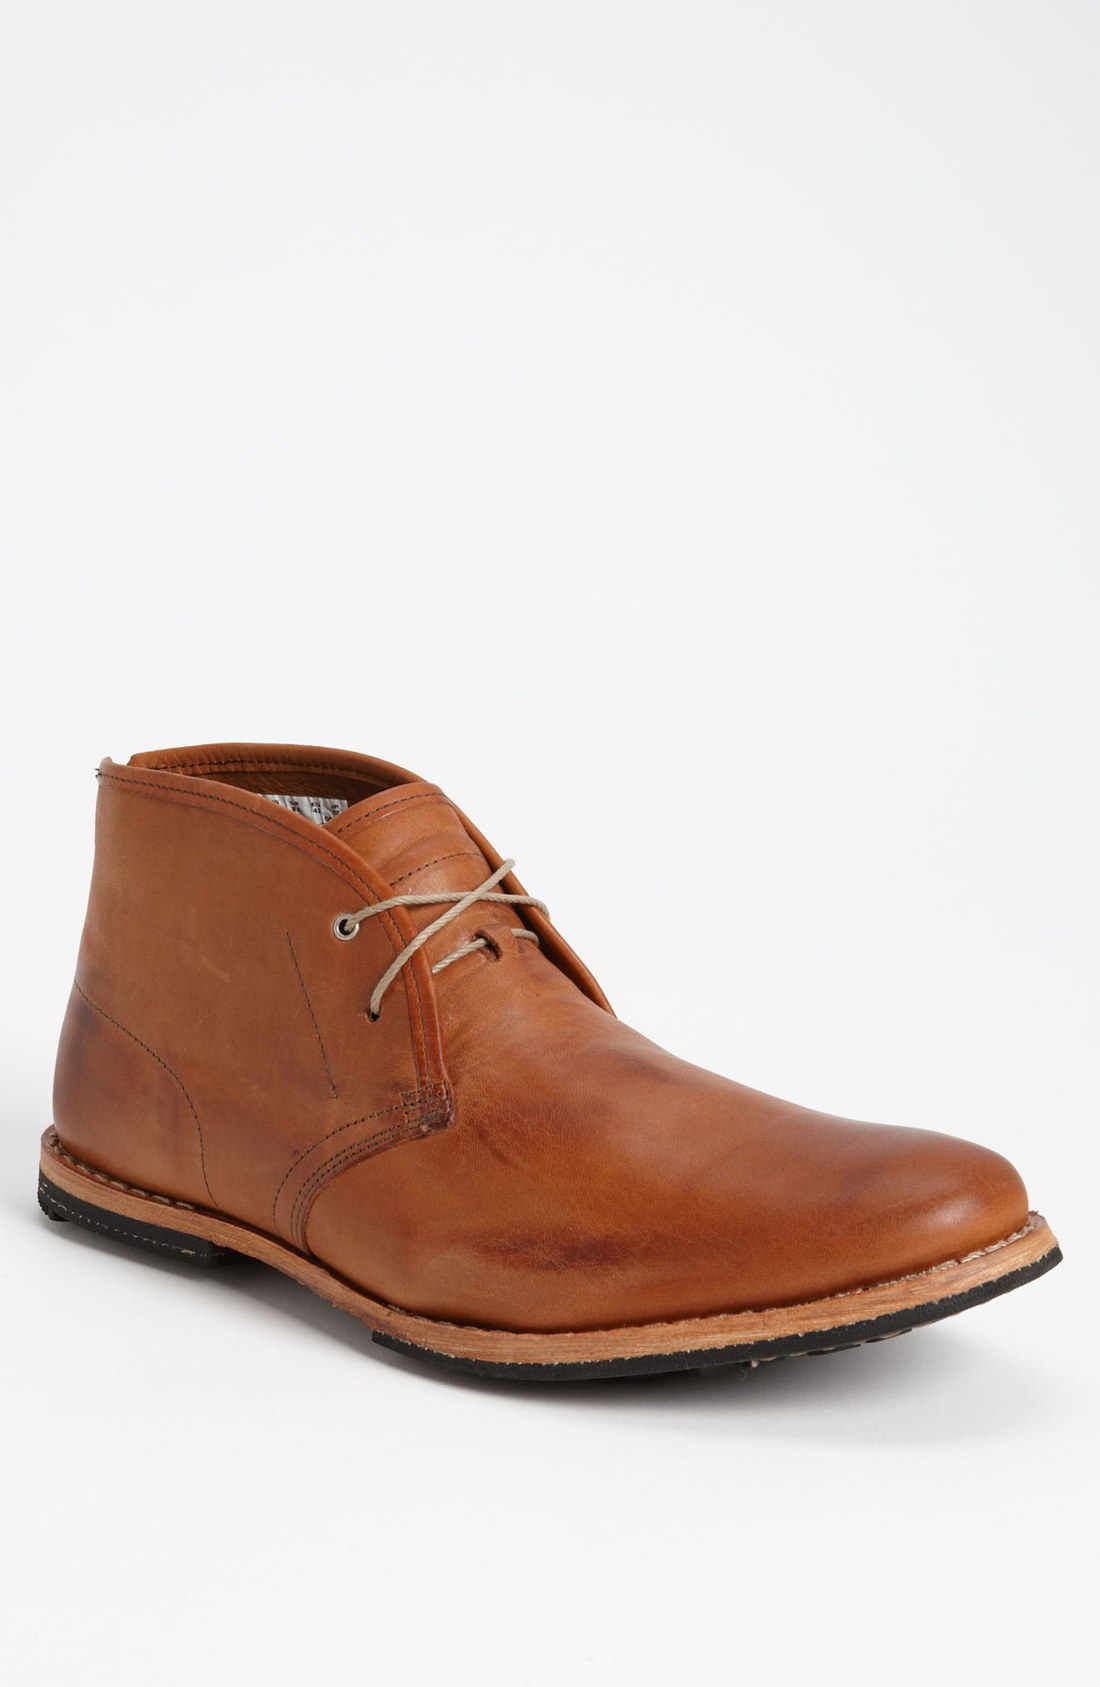 Timberland Boot Company Wodehouse Lost History Boot In